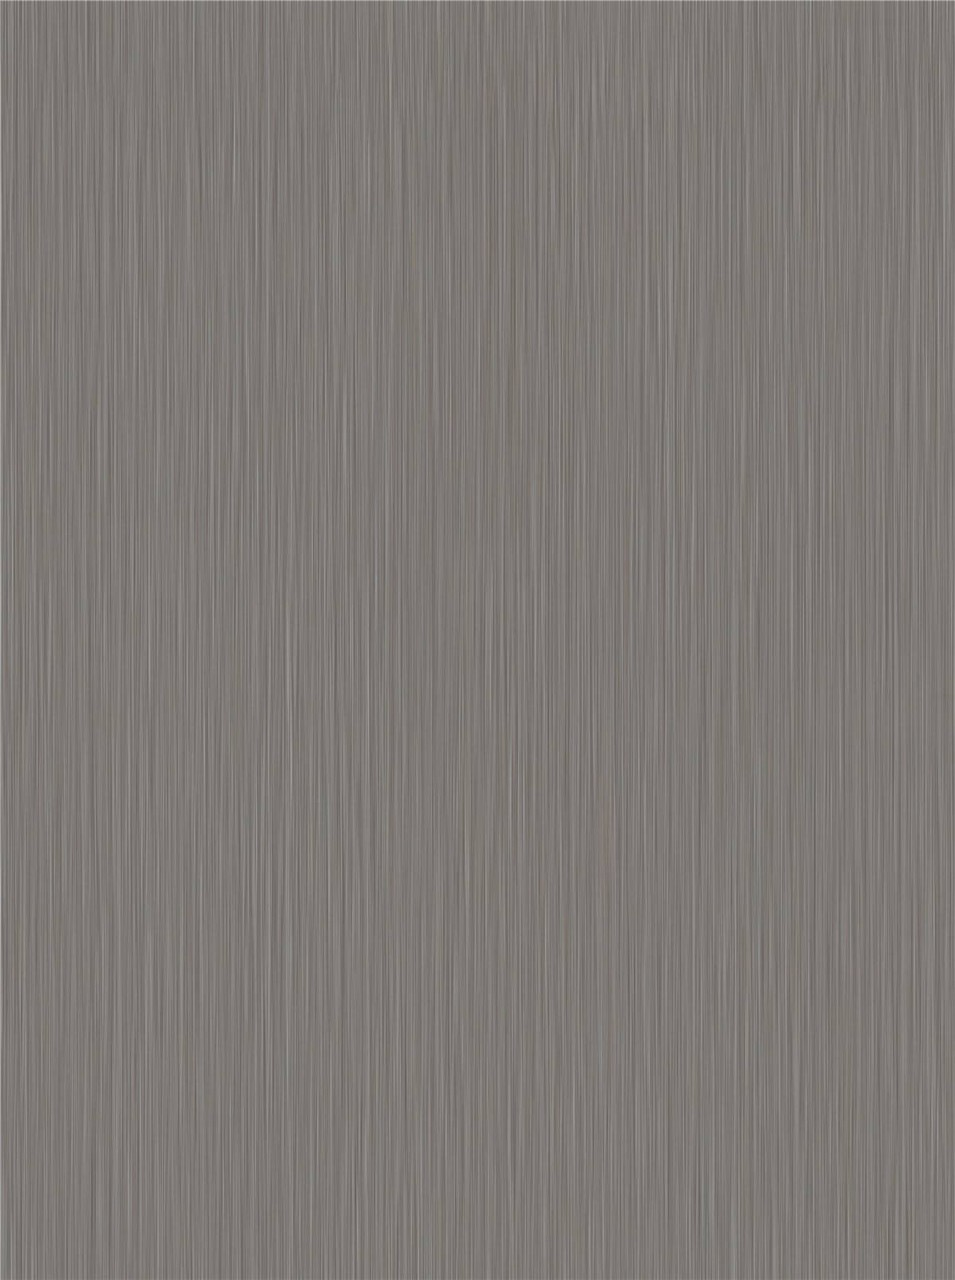 78202 idecor decor paper fine line up to 7ft